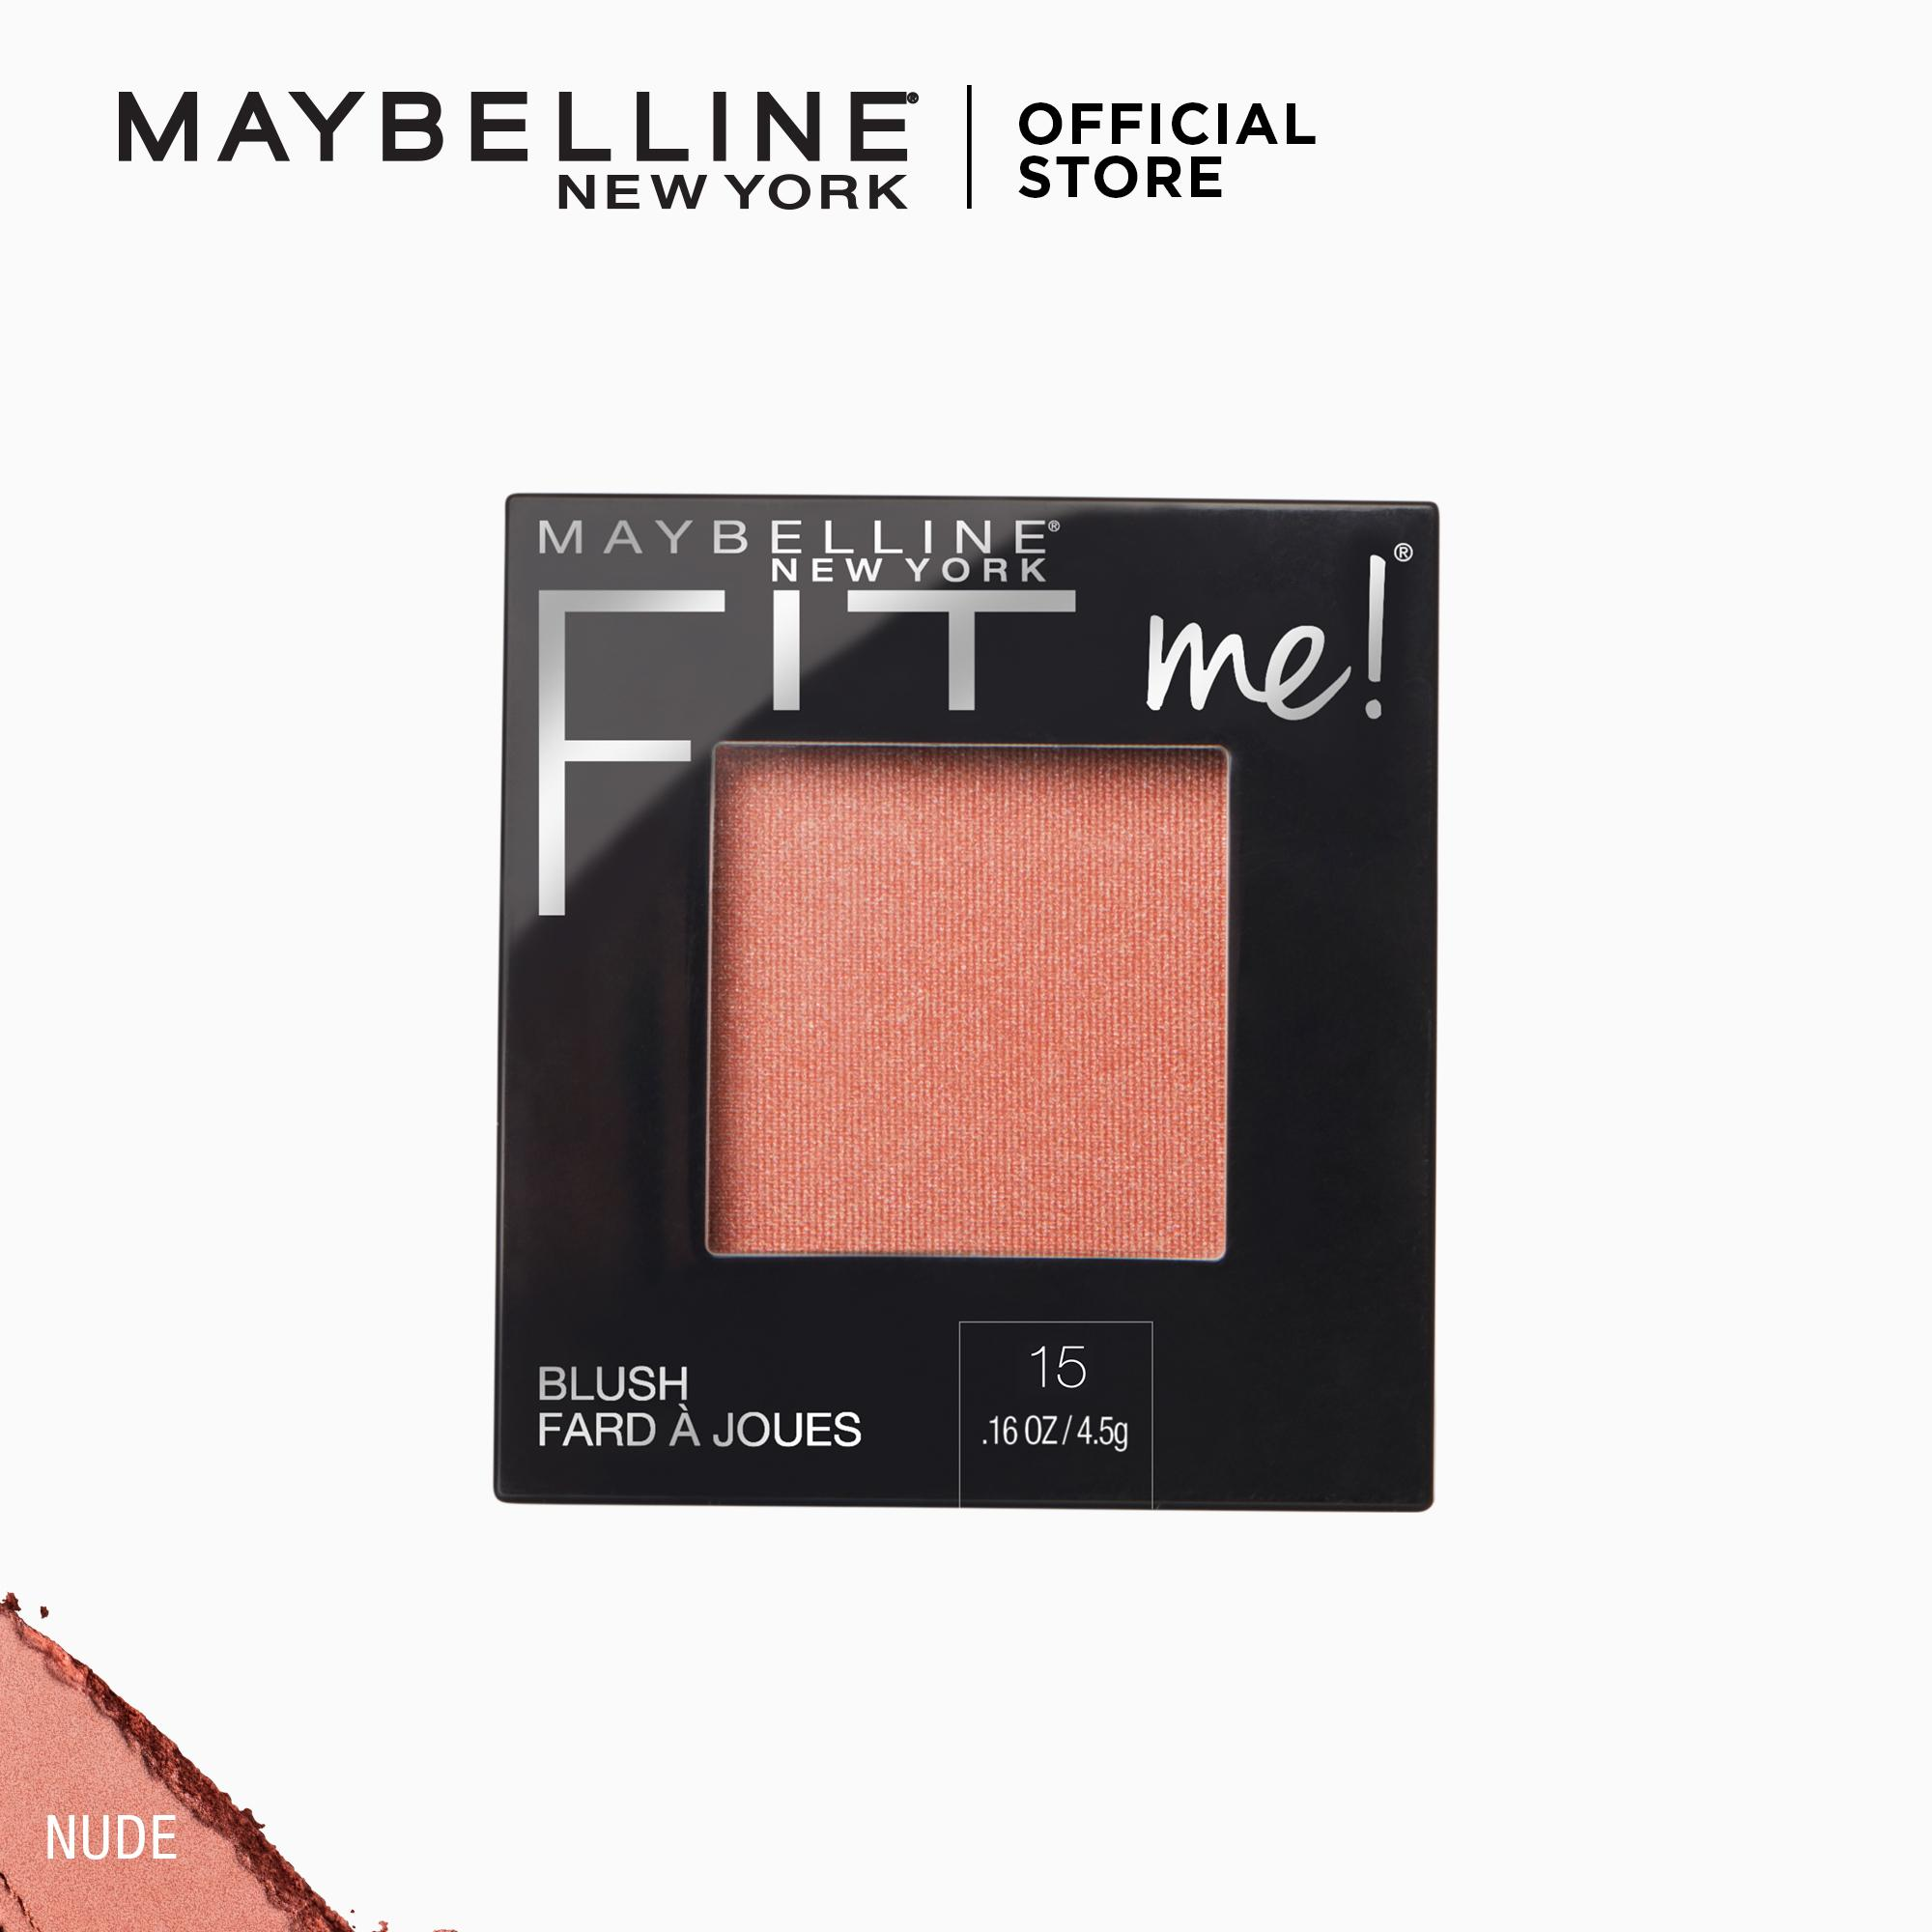 Maybelline Philippines Price List Lipstick Fresh Mat Bb Cushion 02 Light Fit Me All Day Natural Lightweight Blush By